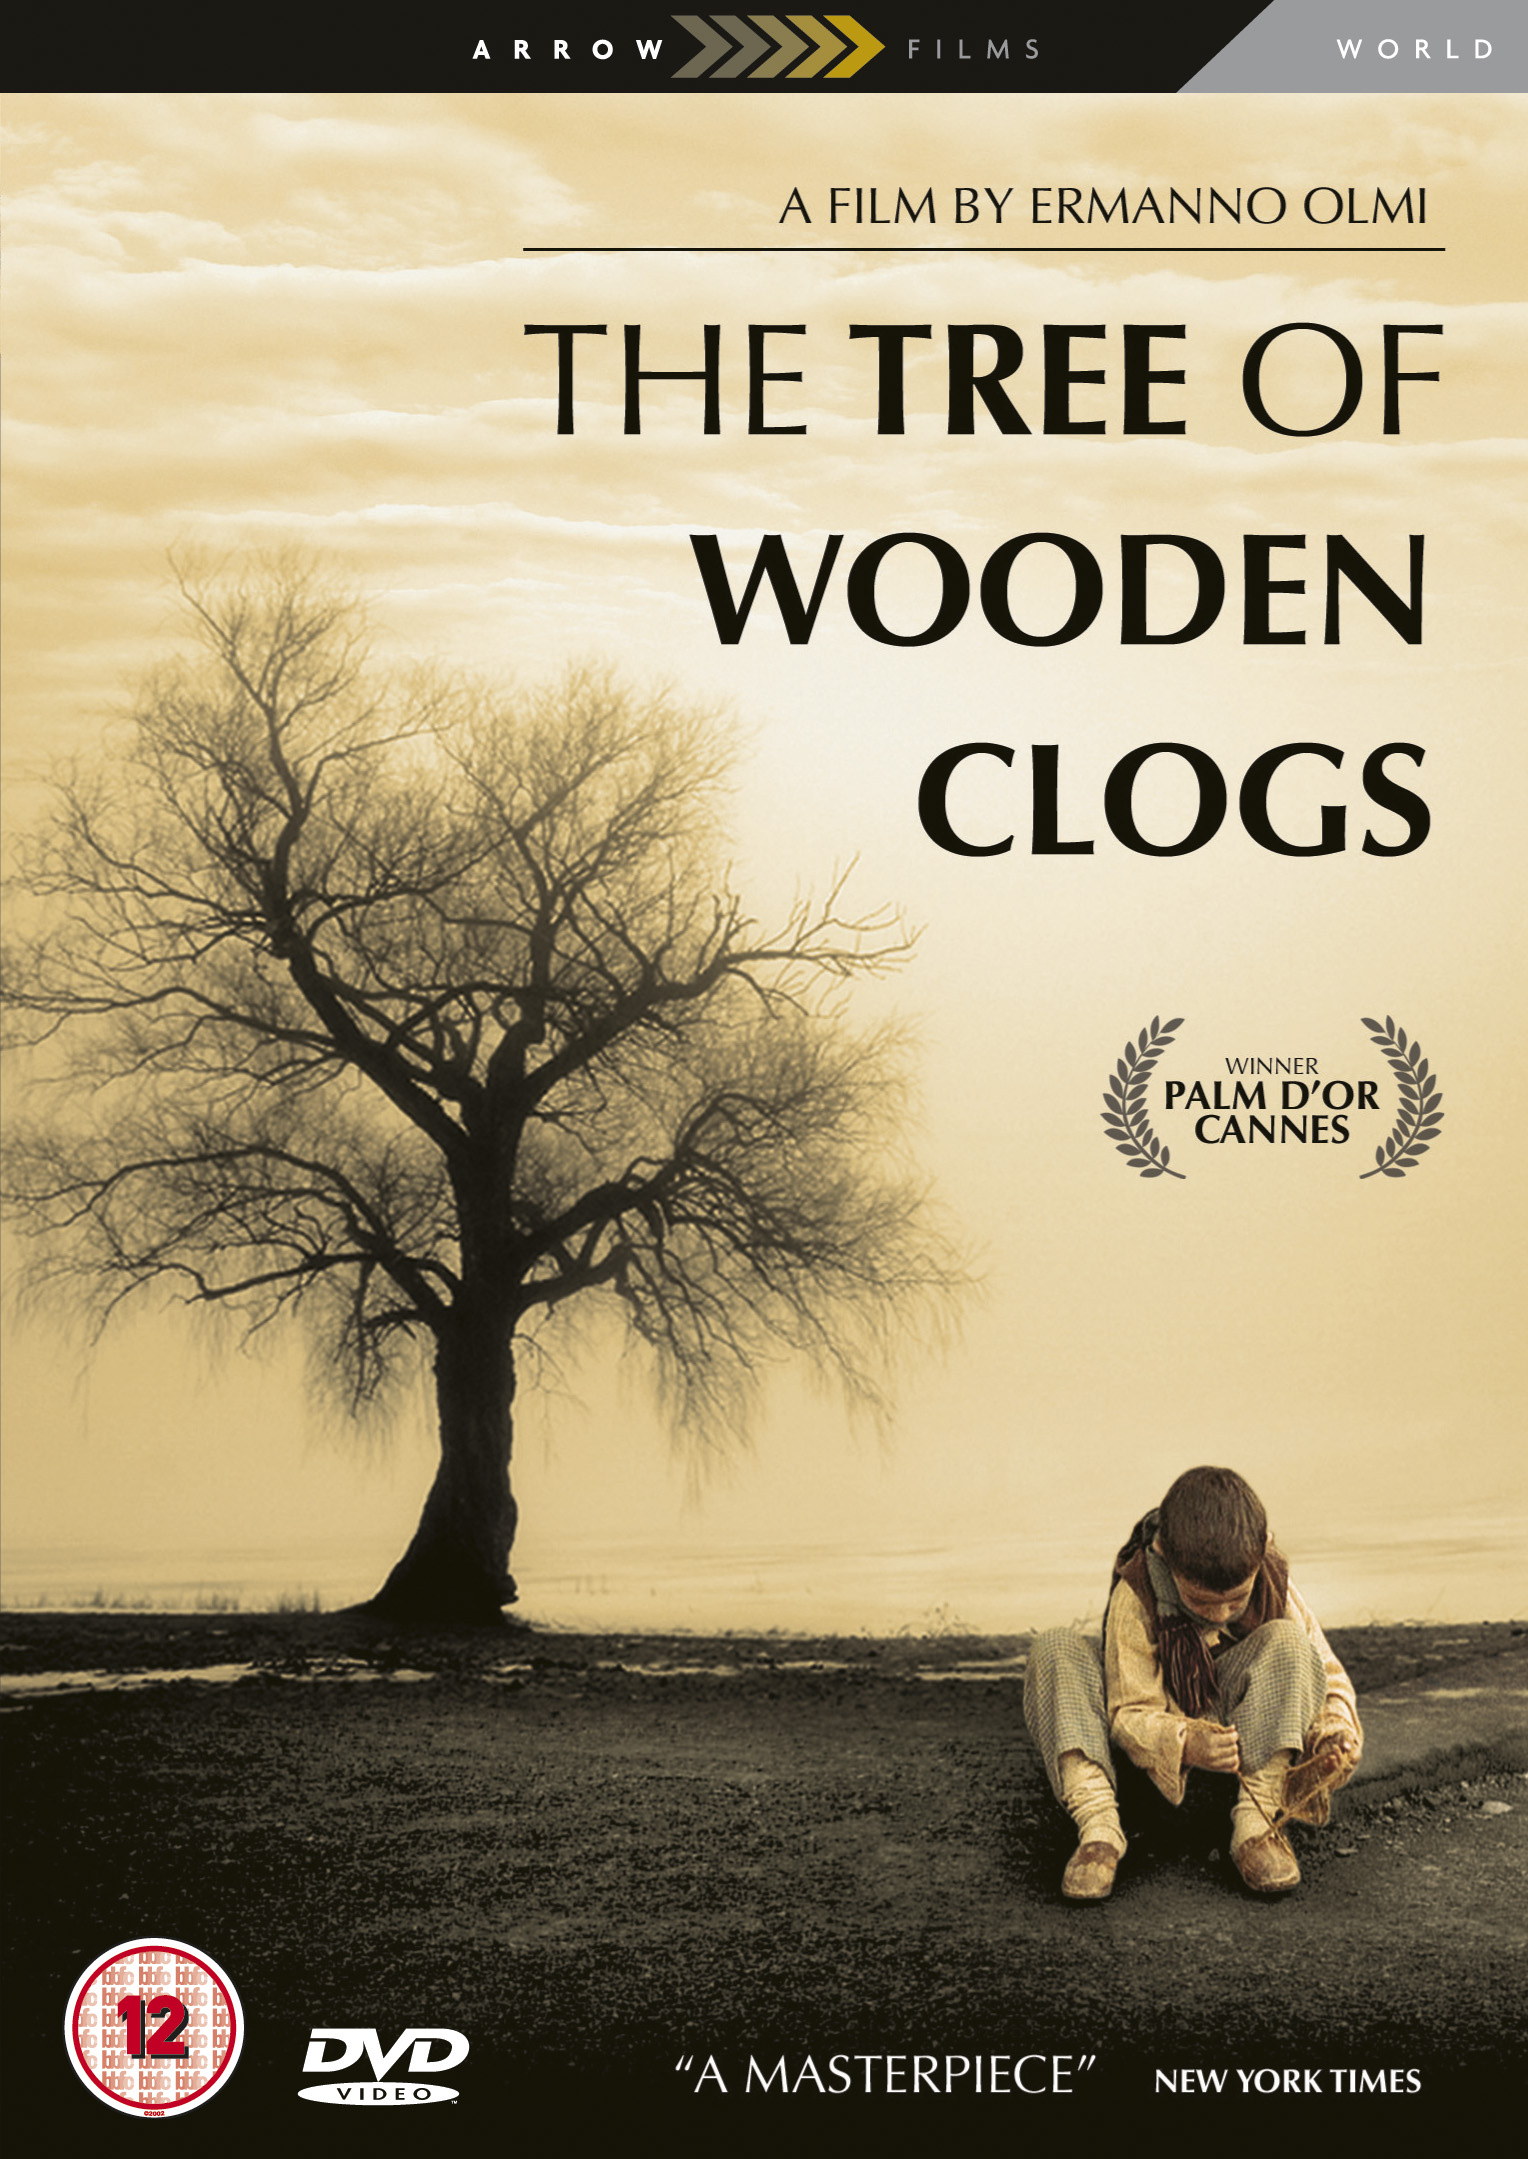 TheTreeofWoodenClogs.jpg